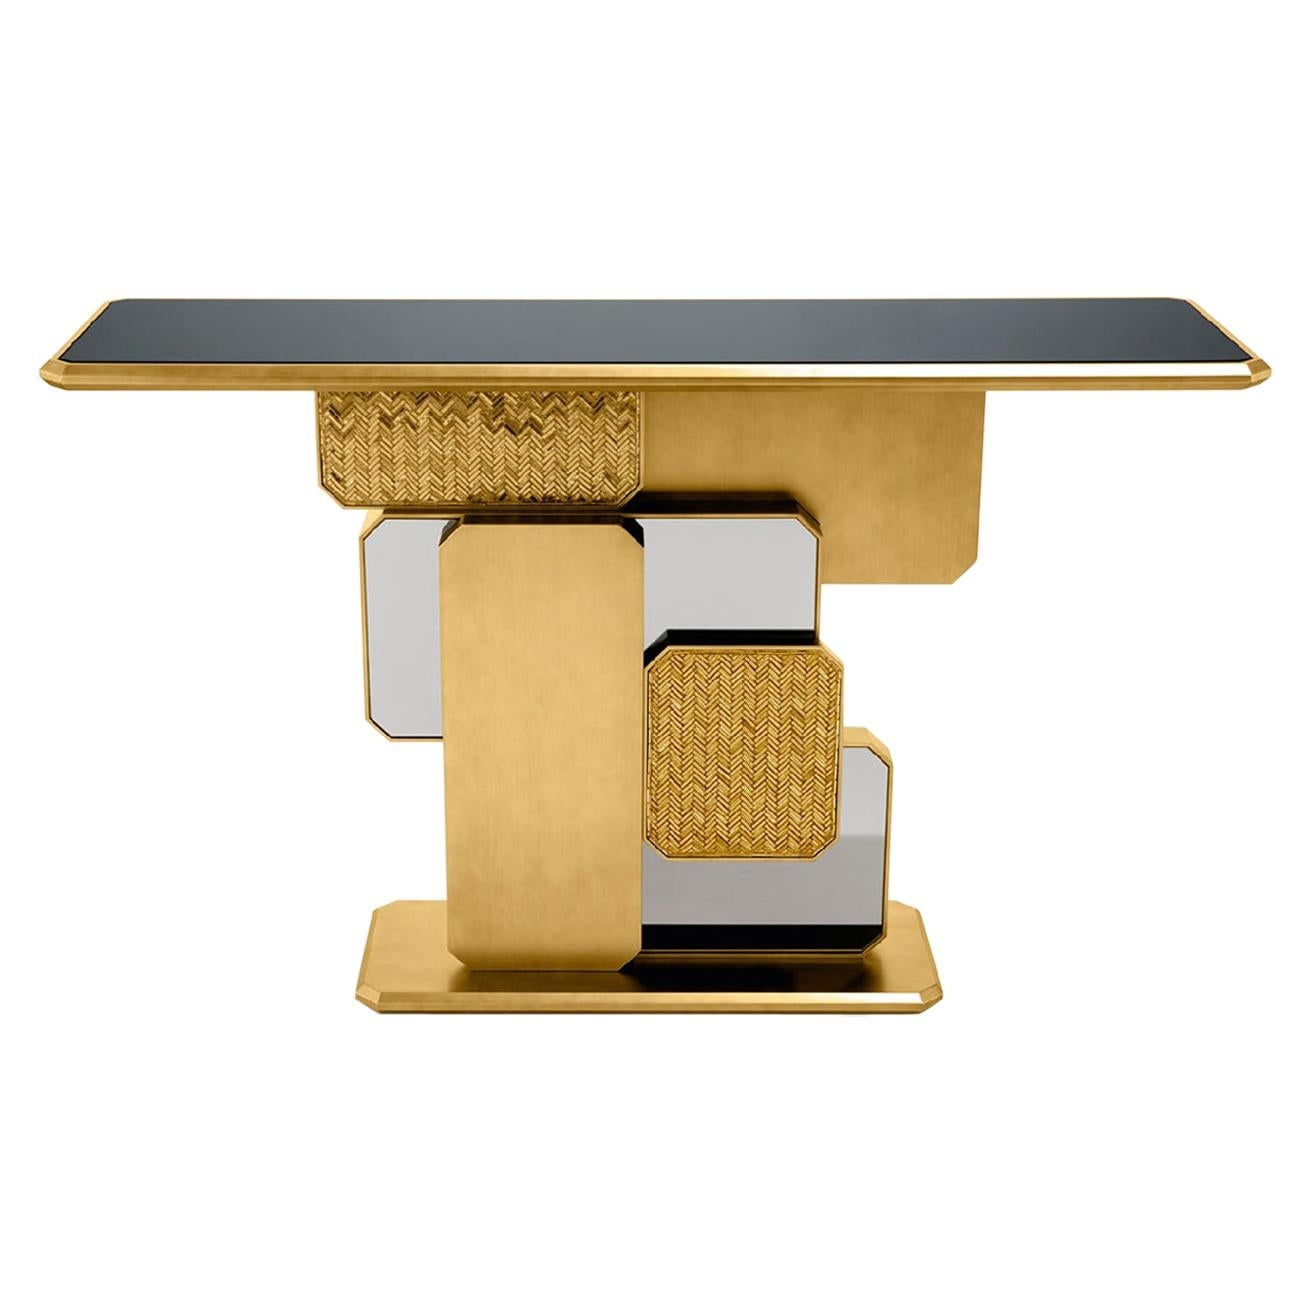 Special Price Display Console Bronzed Finish Top Smoked Mirror Mosaic Insert